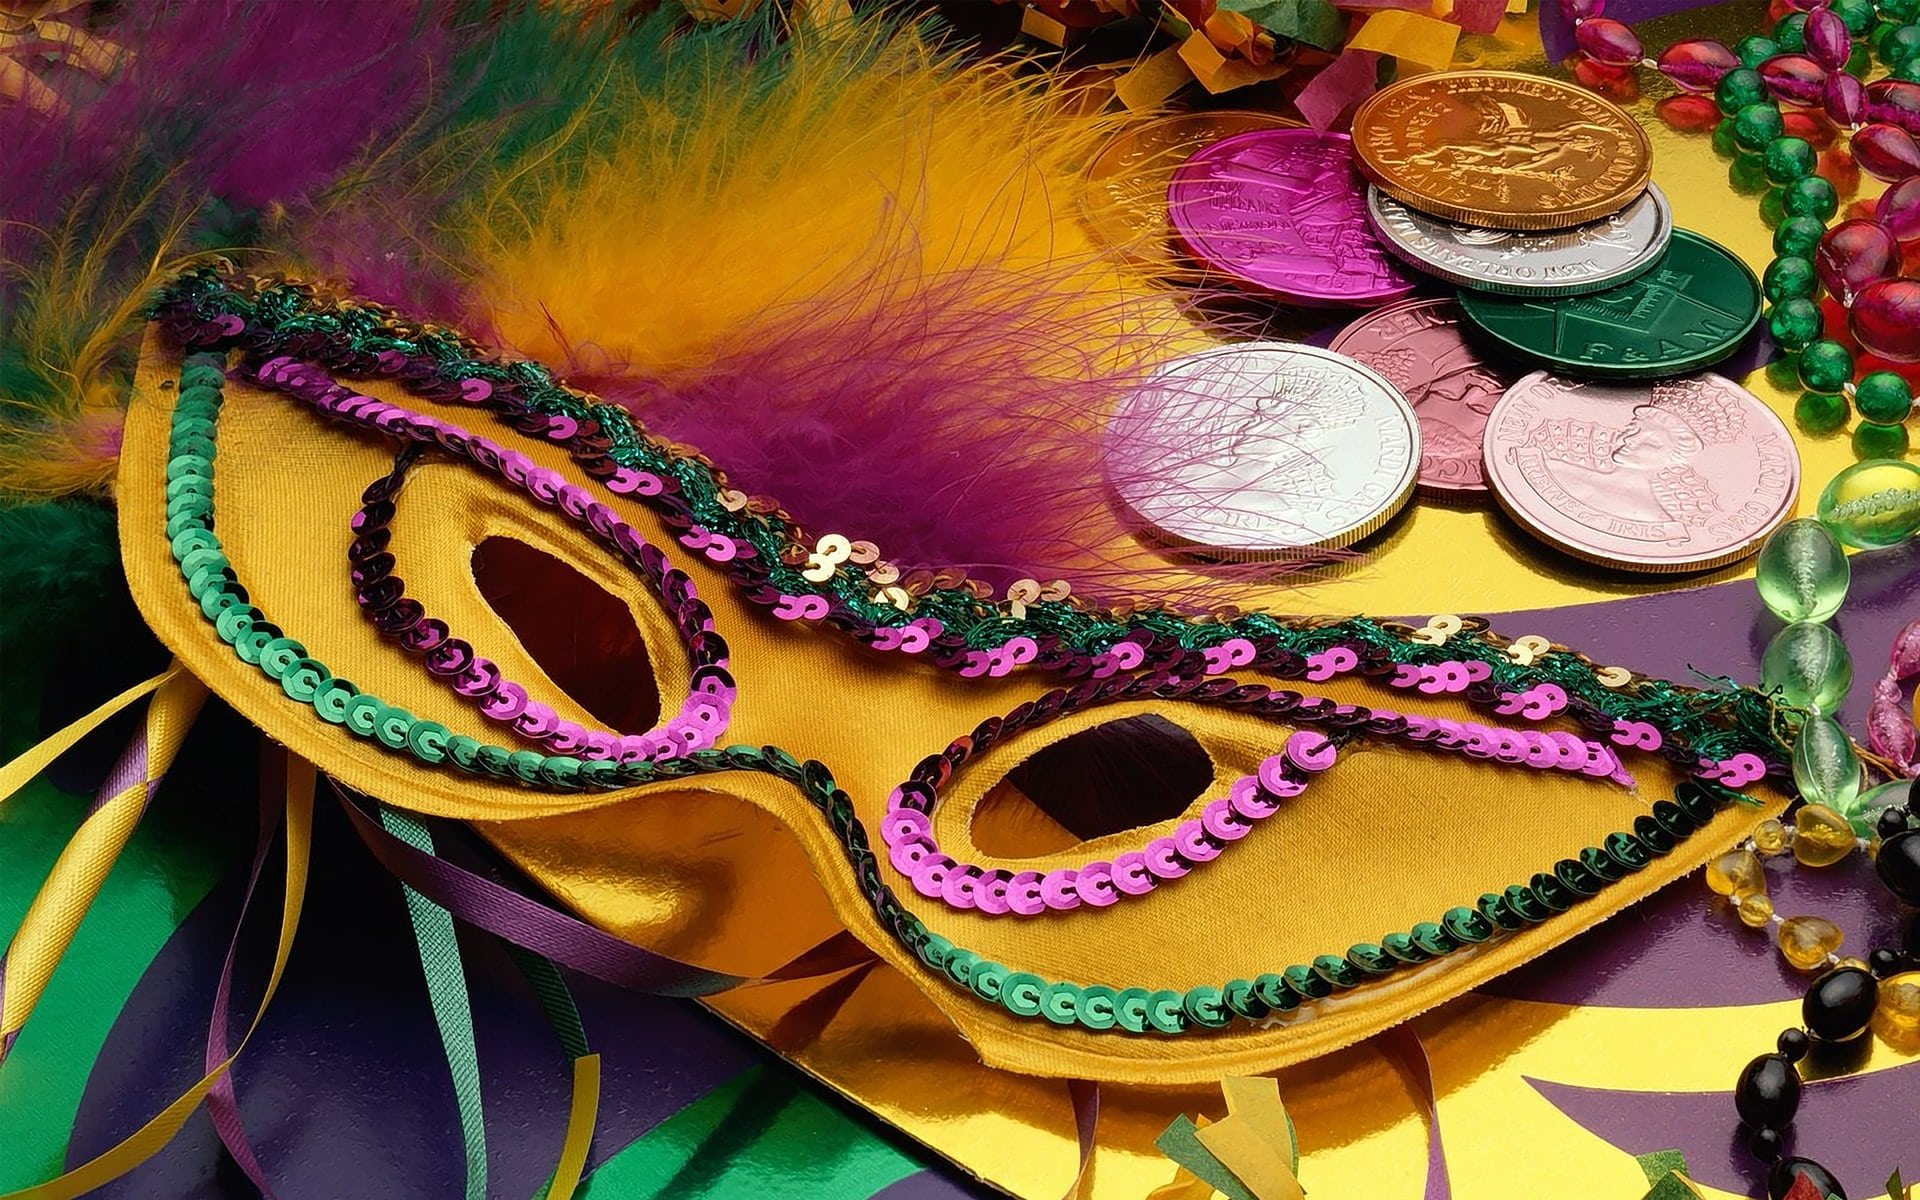 mardi gras hd desktop wallpapers | 7wallpapers